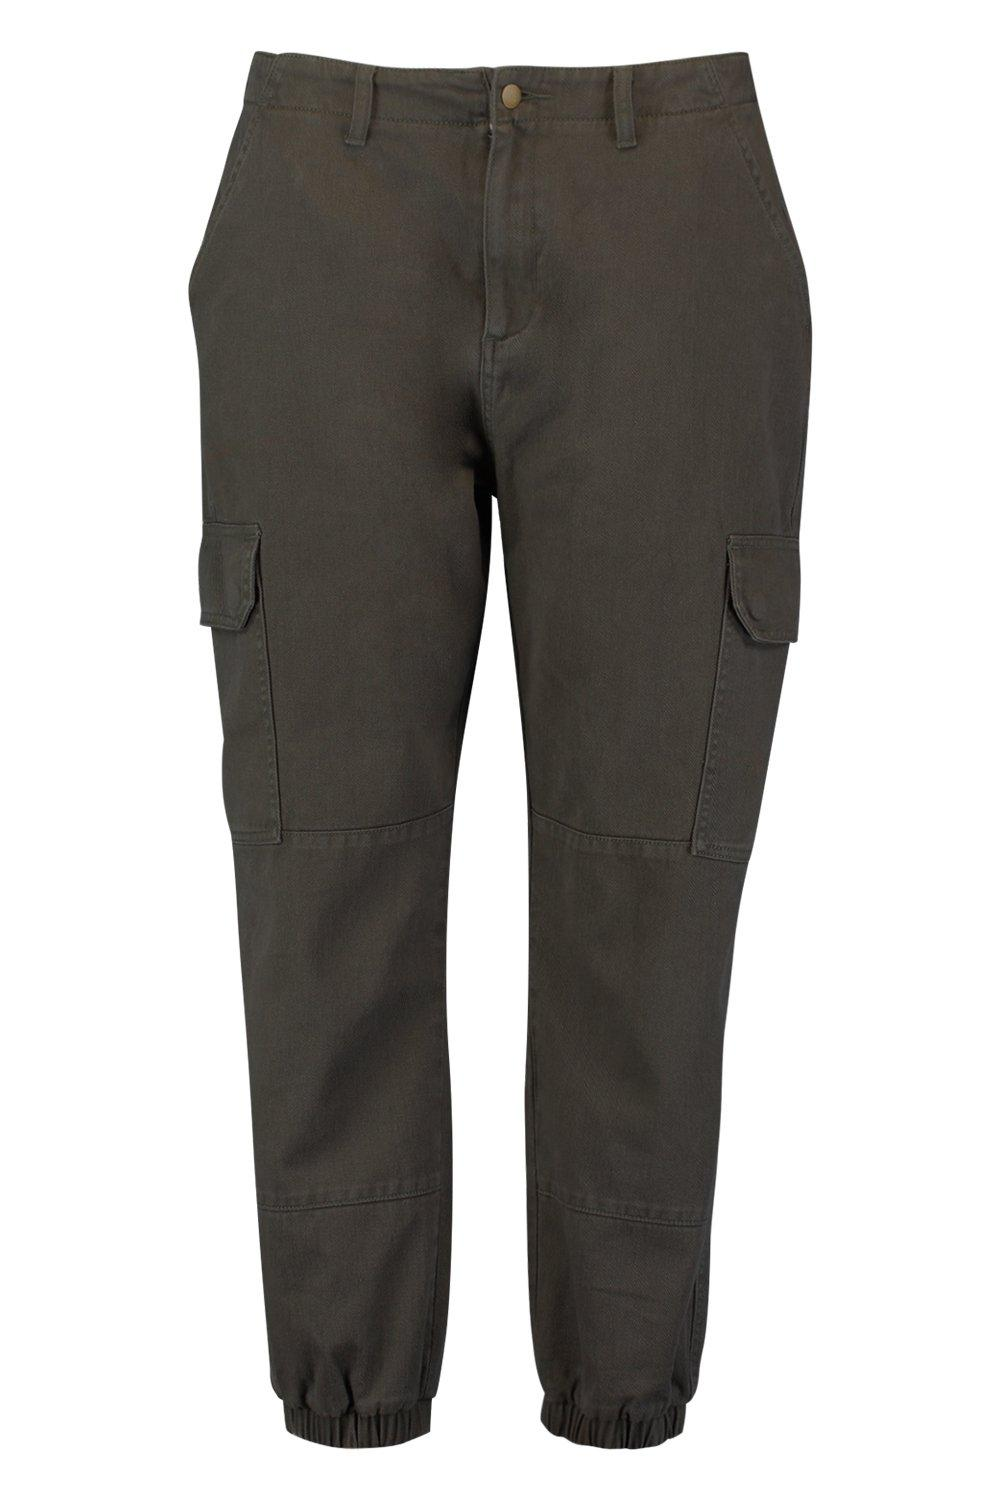 utility risvolti stile in in Plus Pantaloni con denim Zfg4qnw8